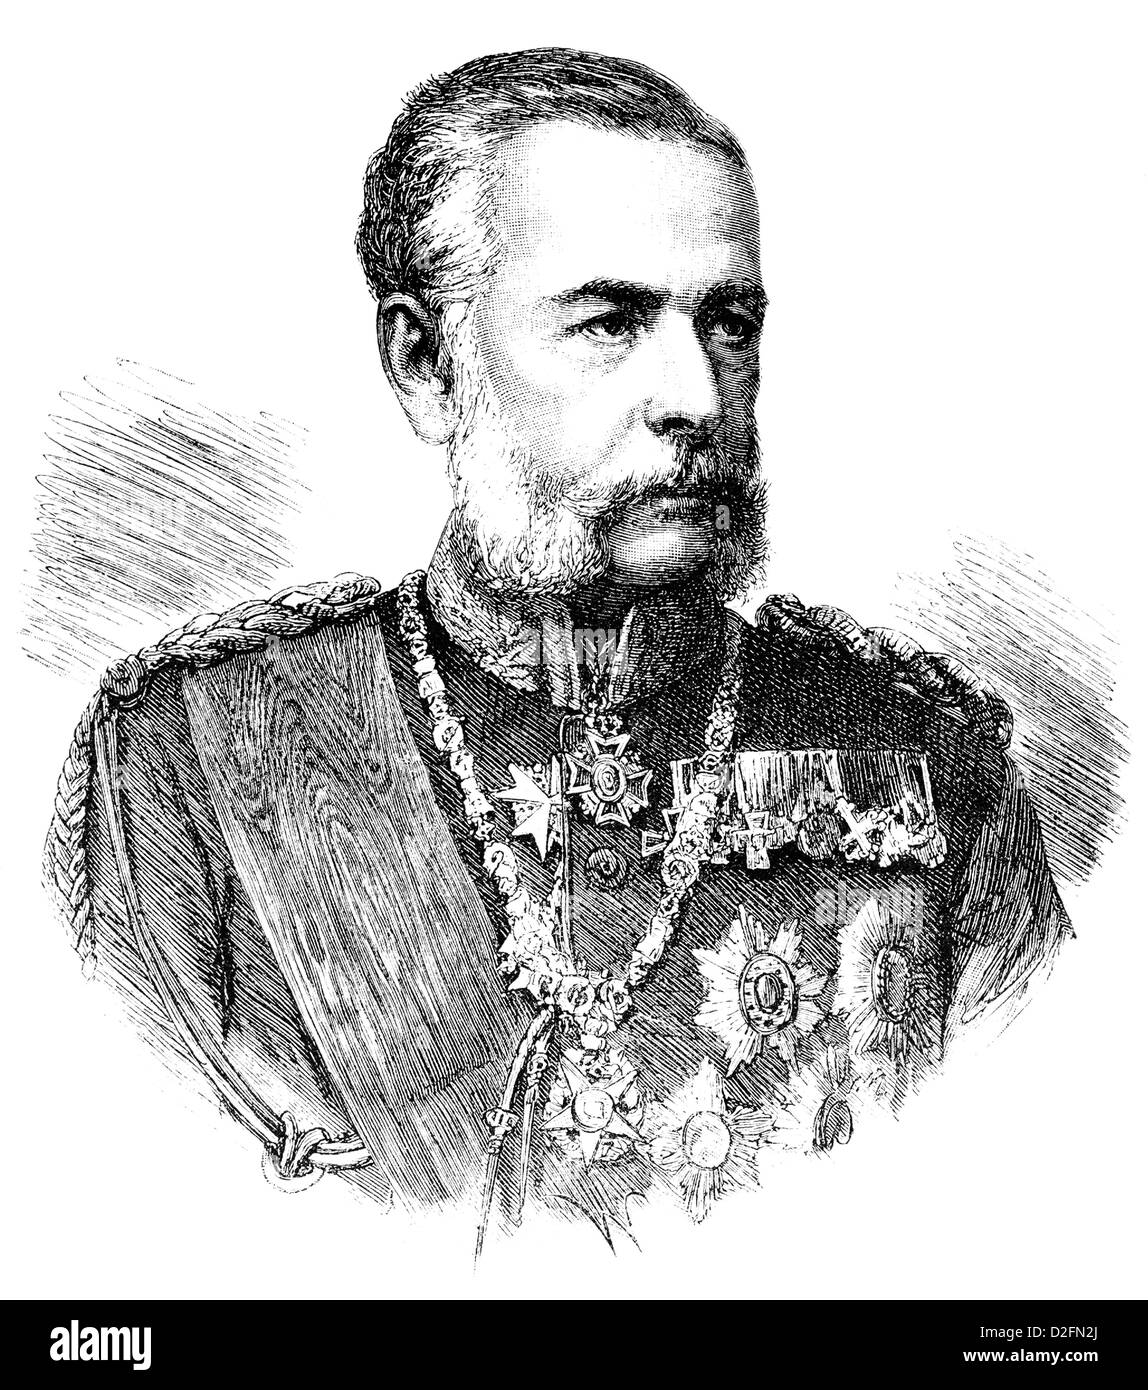 Historic drawing, portrait of Georg Friedrich Alfred Graf von Fabrice, 1818-1891, cavalry general and minister of - Stock Image